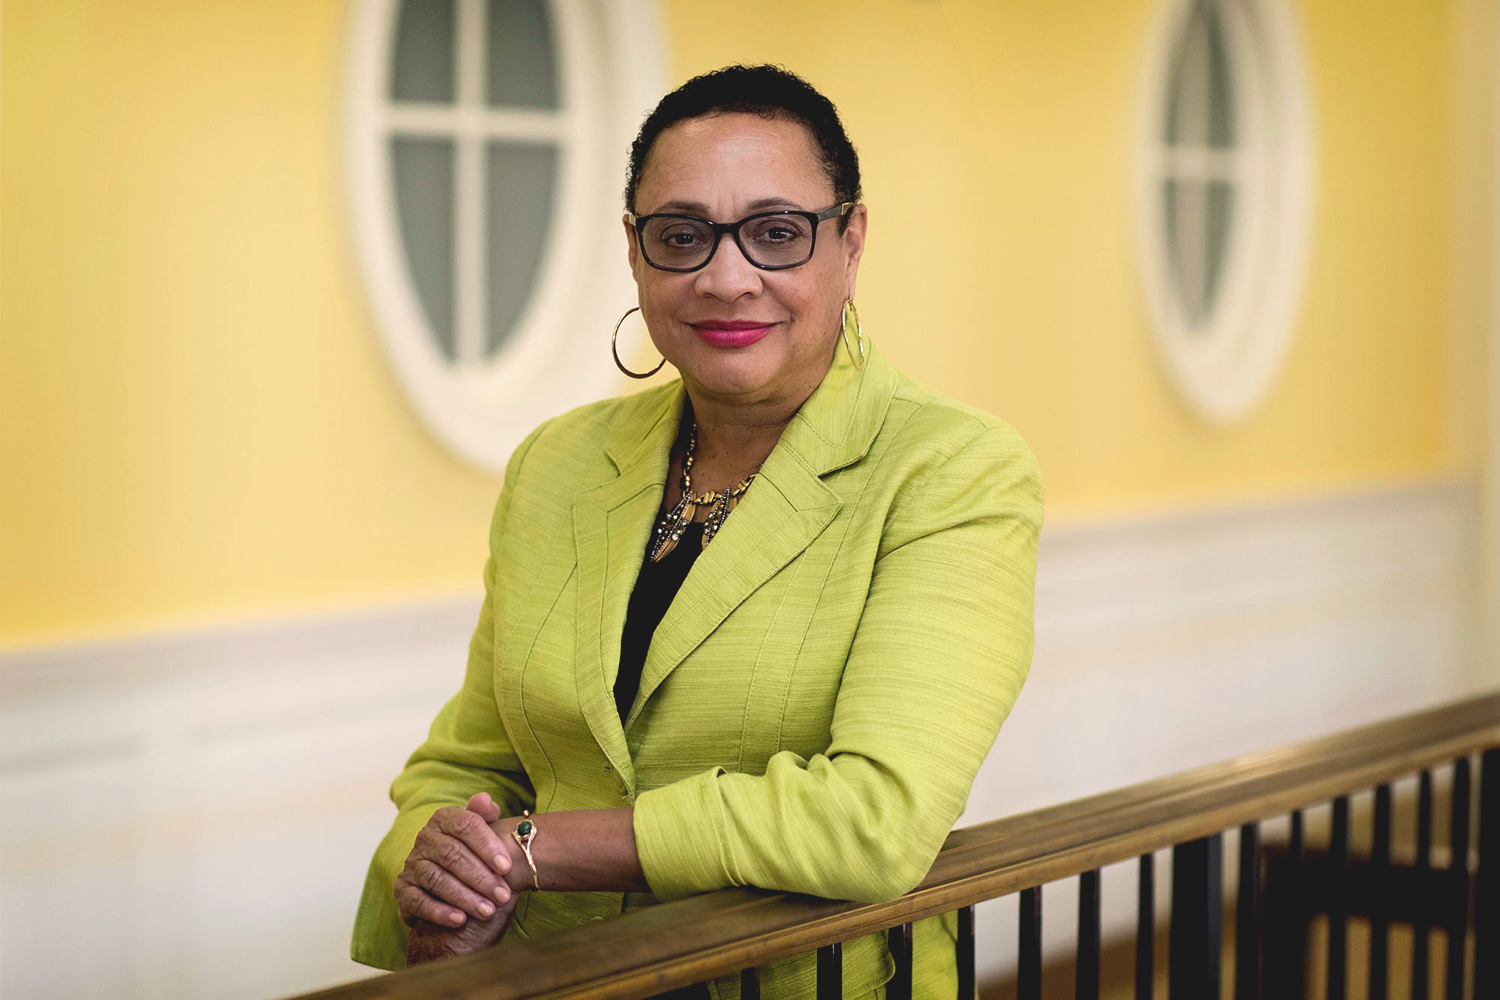 Patrice Grimes, an associate professor of education at UVA, focuses her research on civic education and the historical and socio-cultural contexts of schooling.